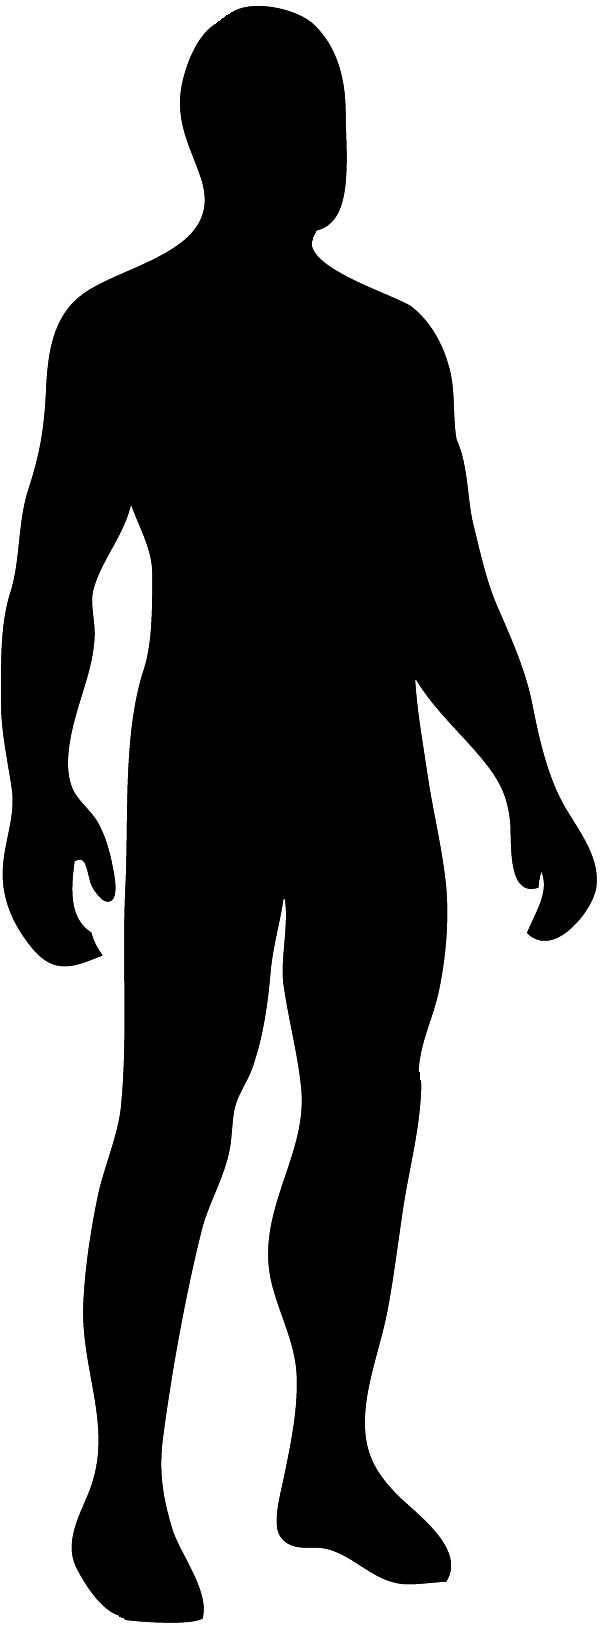 male body silhouette